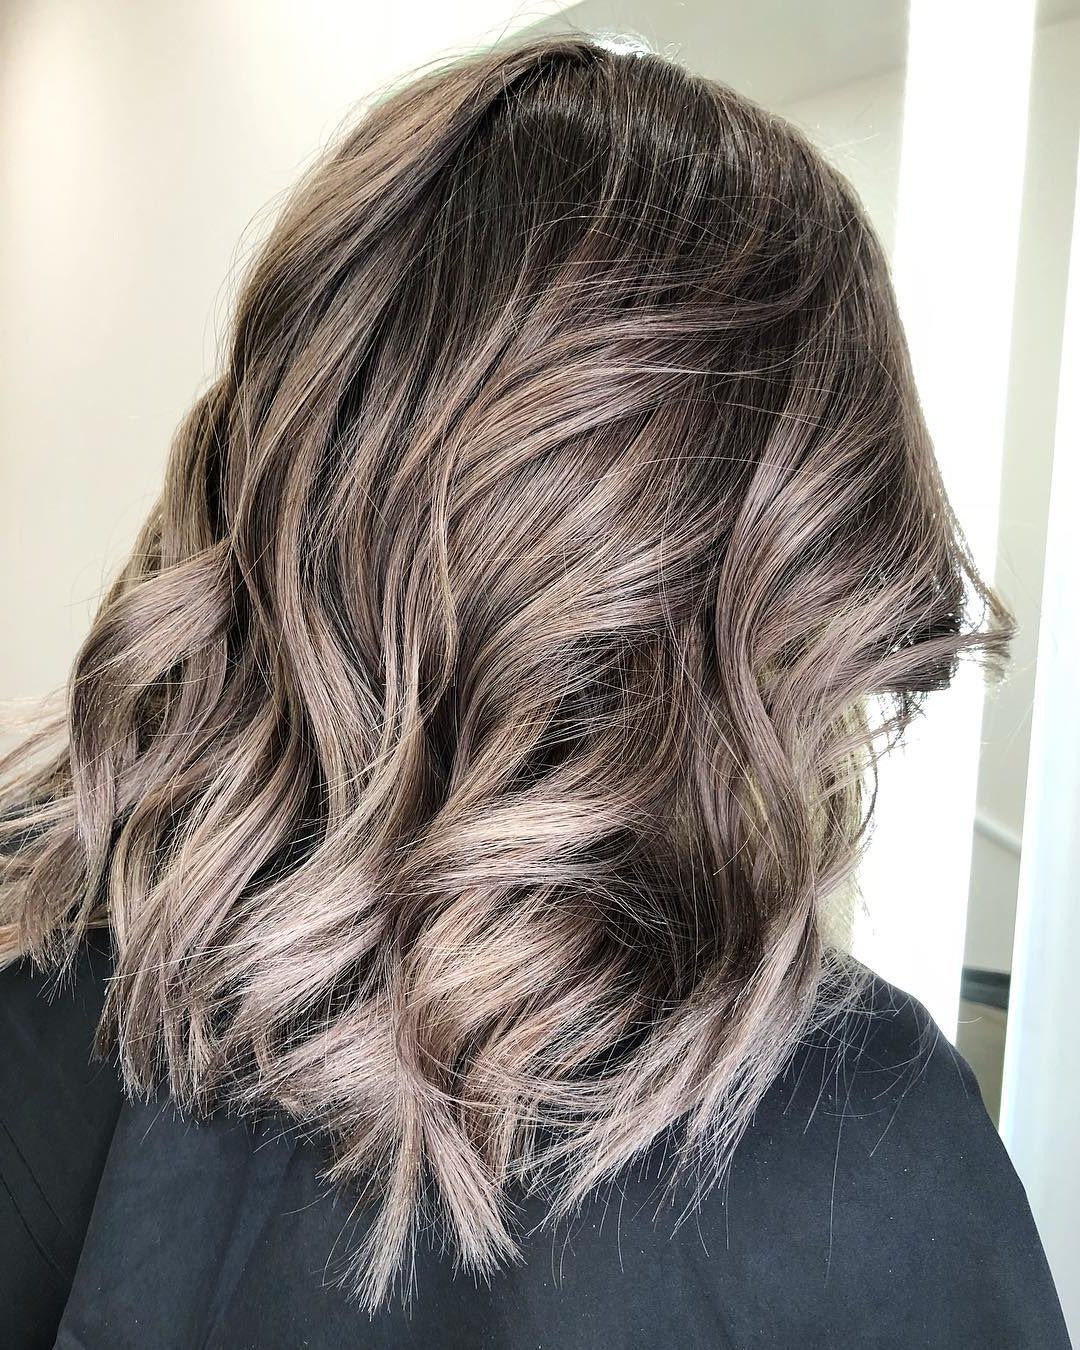 10 Balayage Hair Styles For Medium Length Hair 2019 – Freshen Up With Famous Medium Hairstyles With Balayage (View 1 of 20)